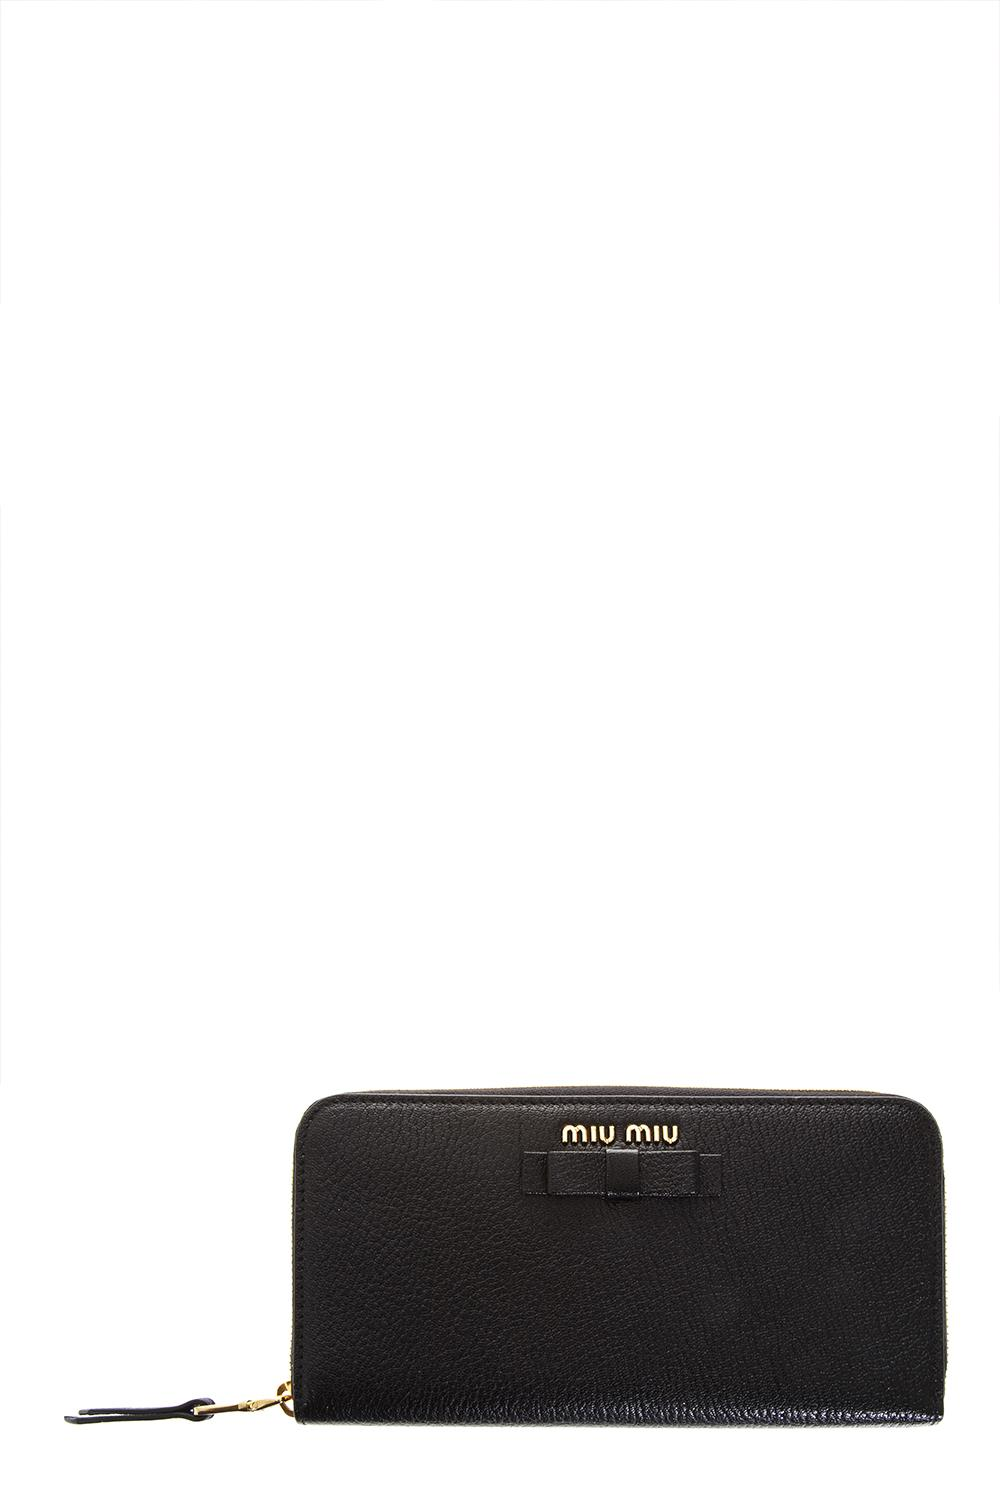 f2d8647c2be MADRAS LEATHER WALLET WITH BOW SS 2018 - MIU MIU - Boutique Galiano